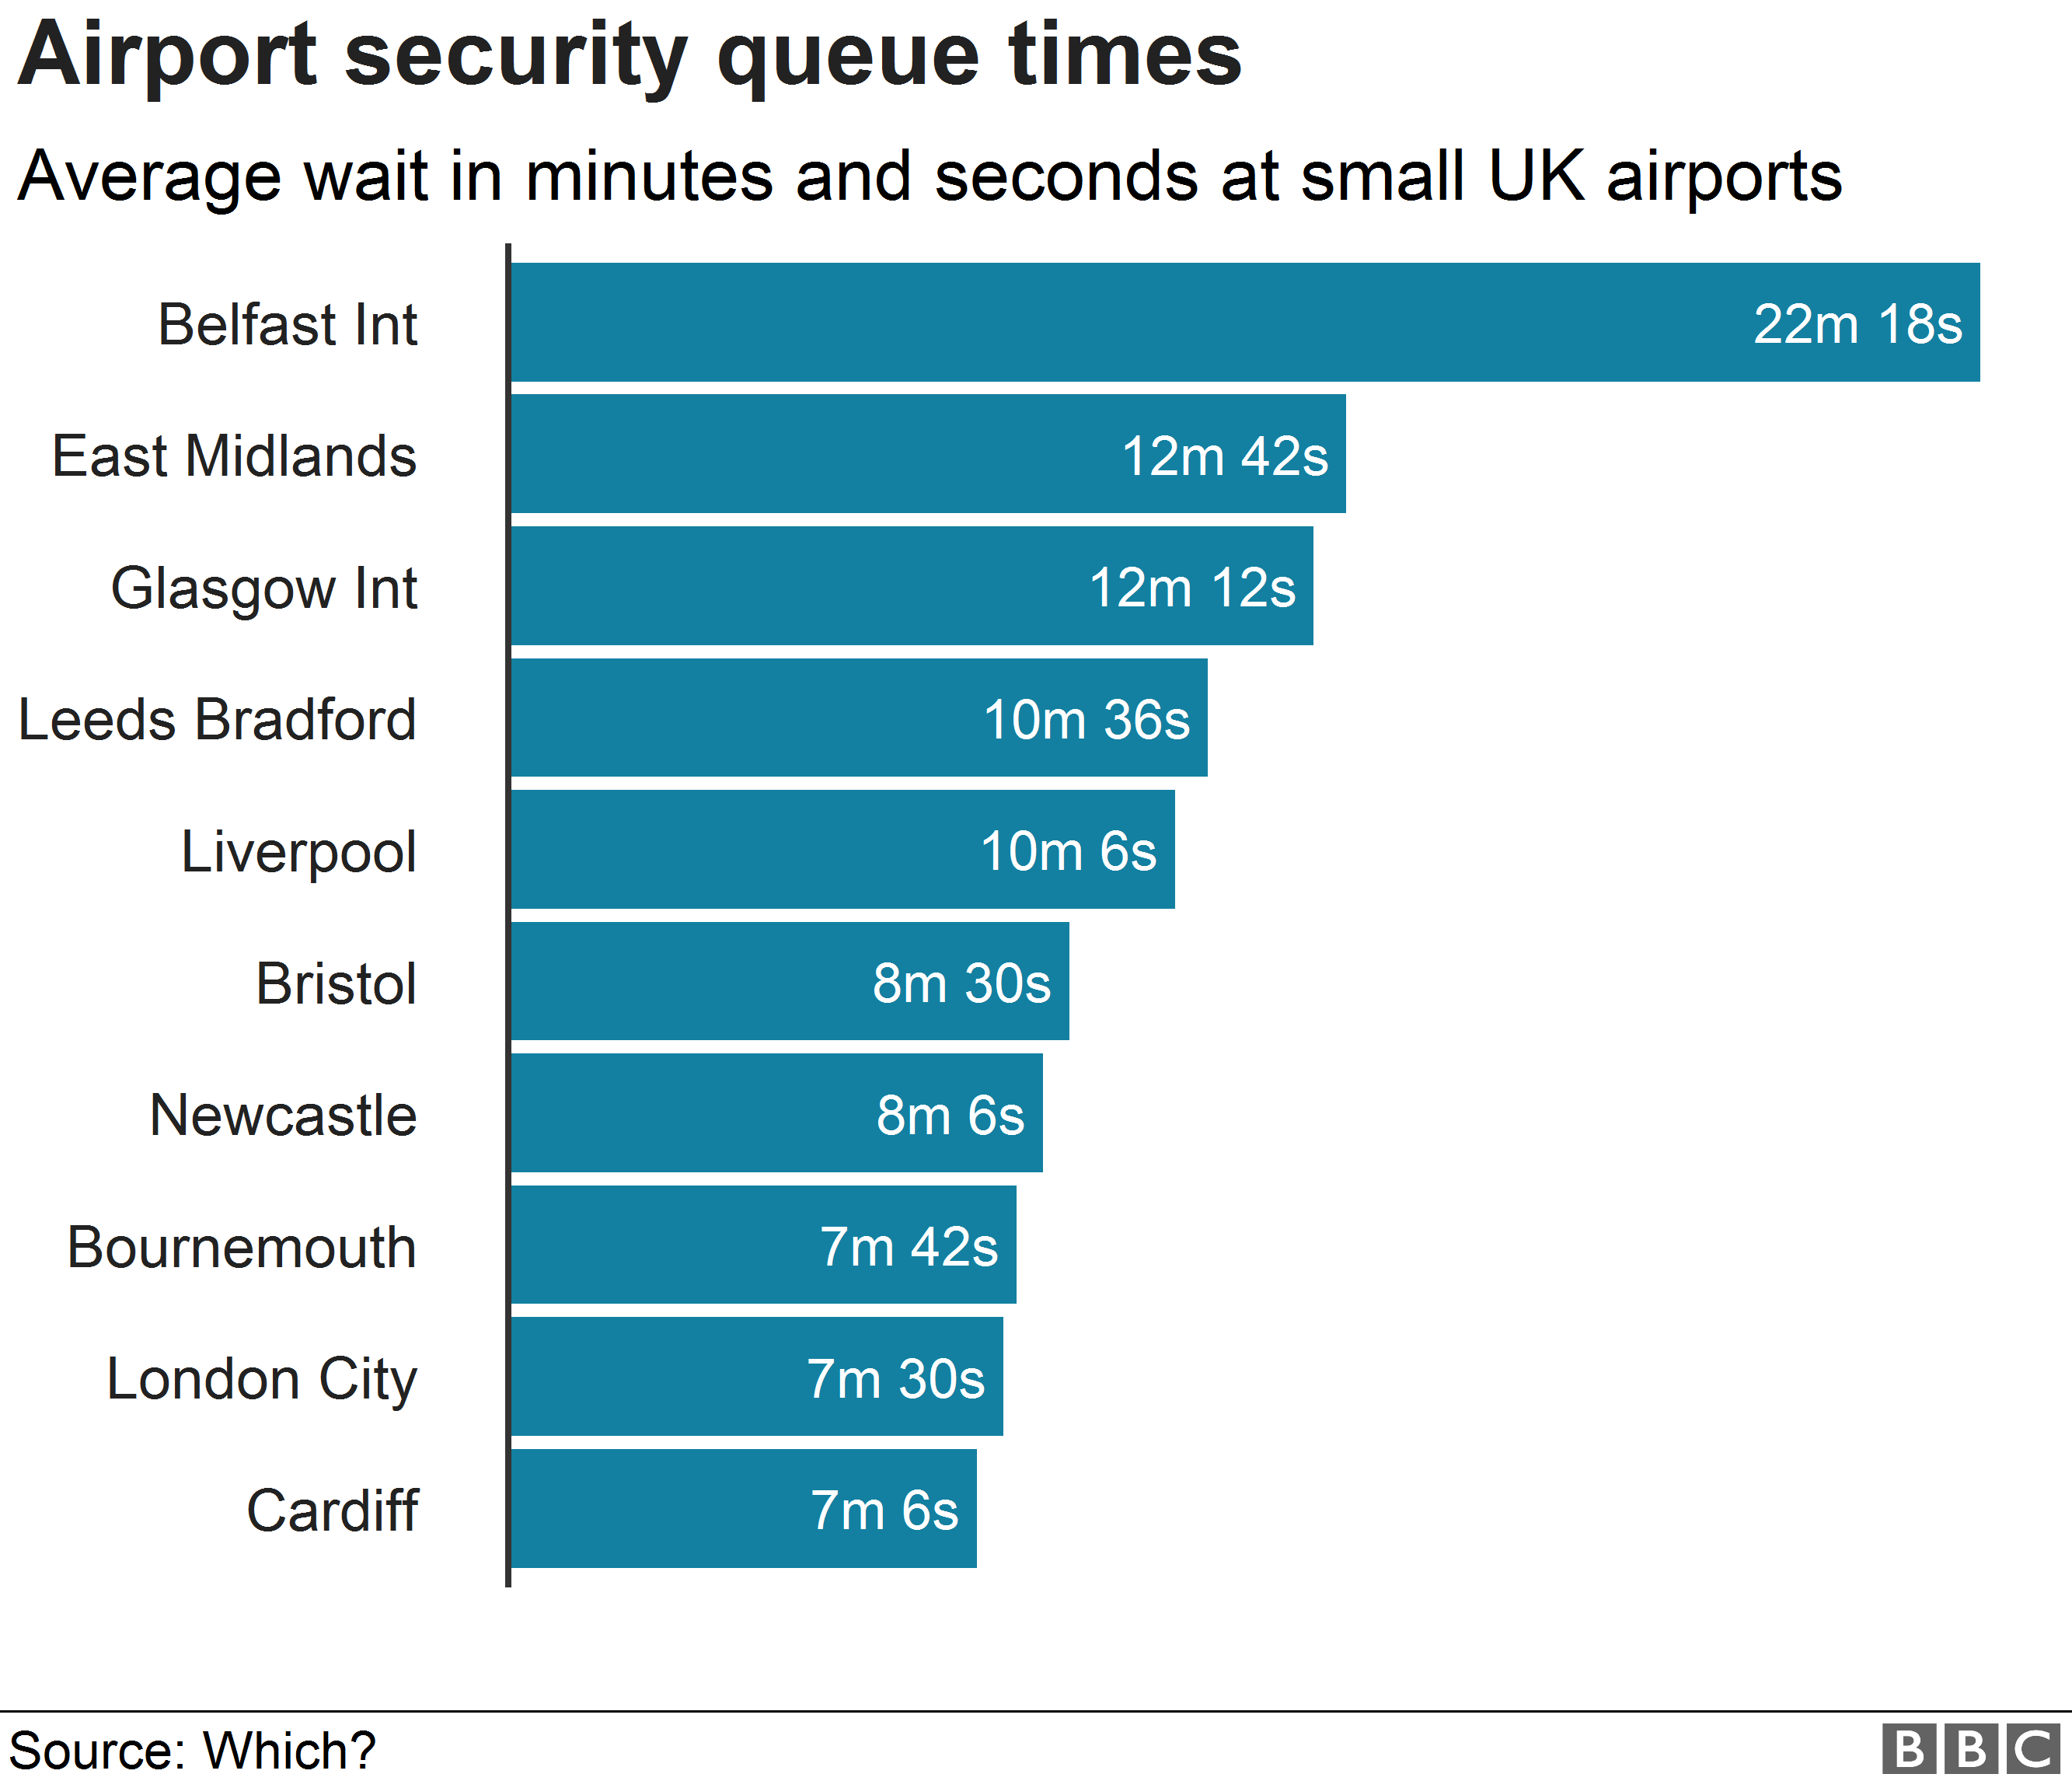 Chart showing wait times at small airports